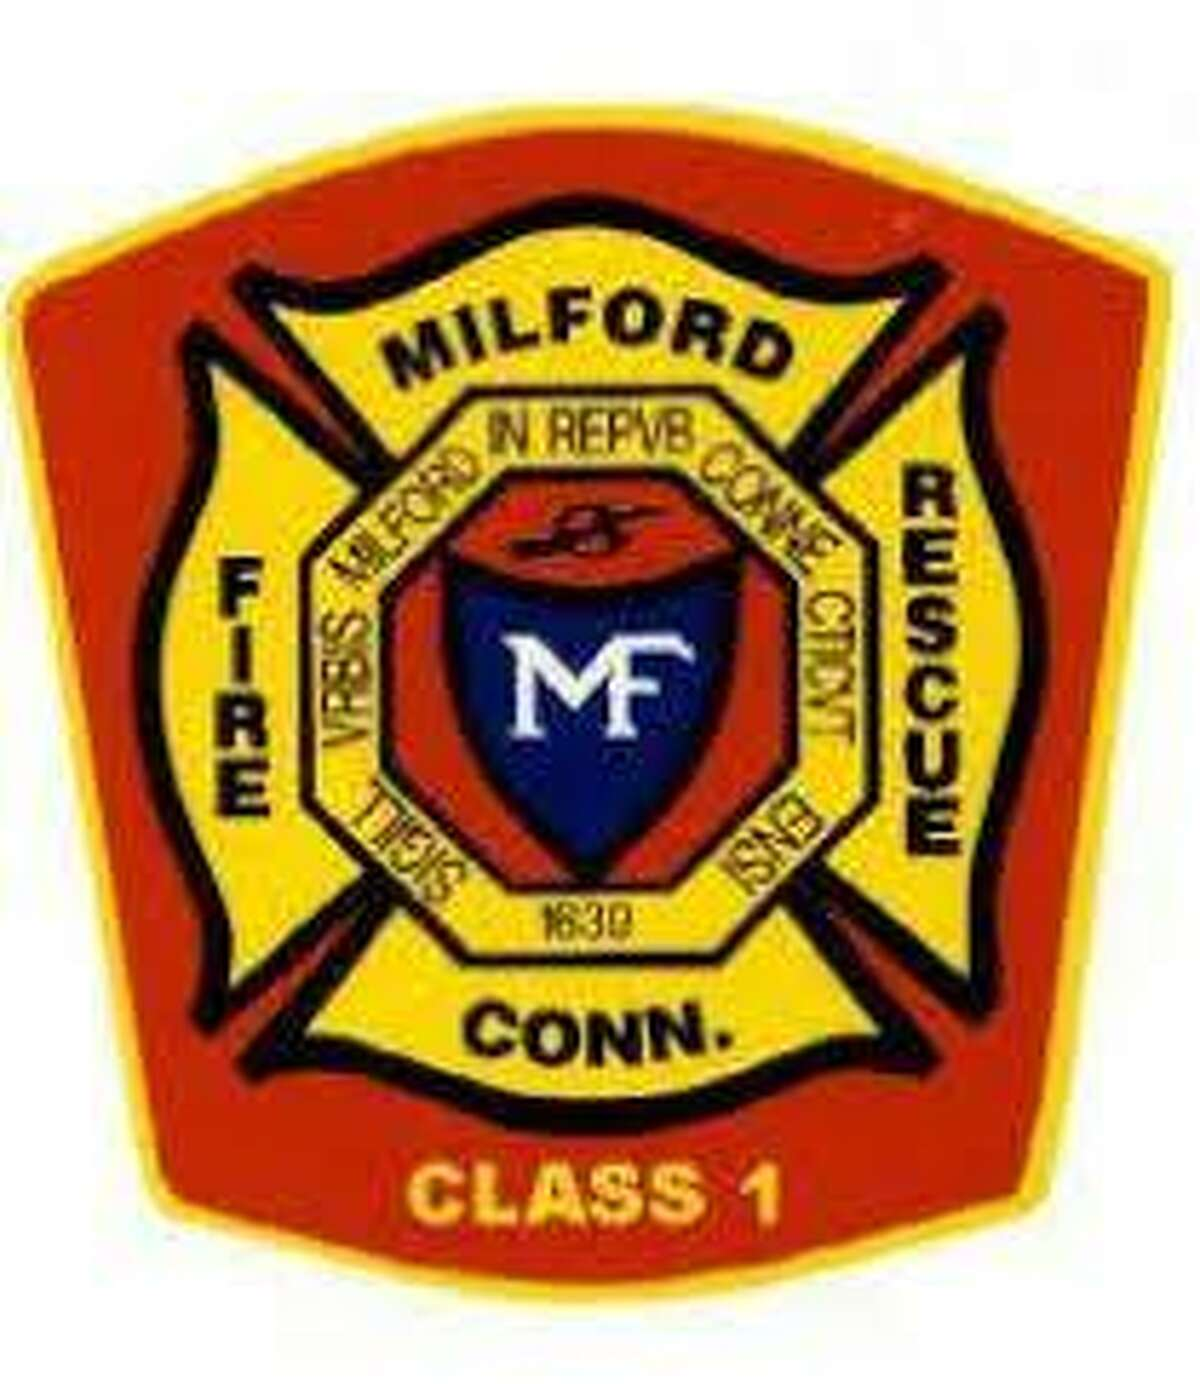 The Milford Fire Department will be conducting a free Propane Tank Collection Day on Saturday, Sept. 21.